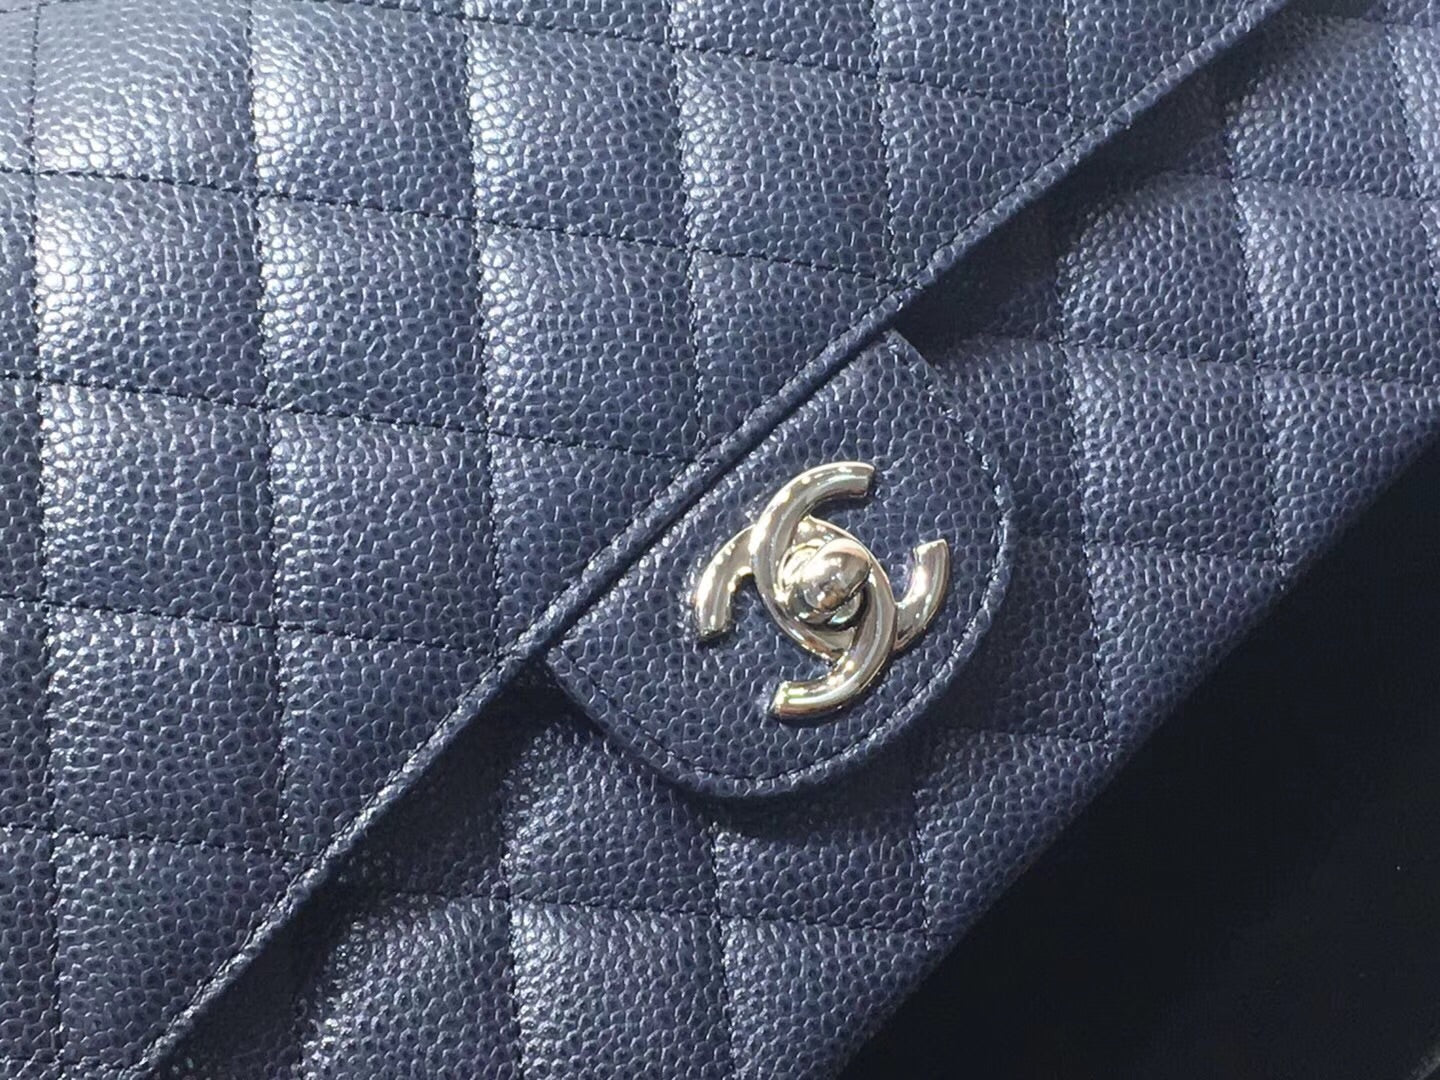 CHANEL CLASSIC BAG MEDIUM GRAINED CALFSKIN - vlixcogoods